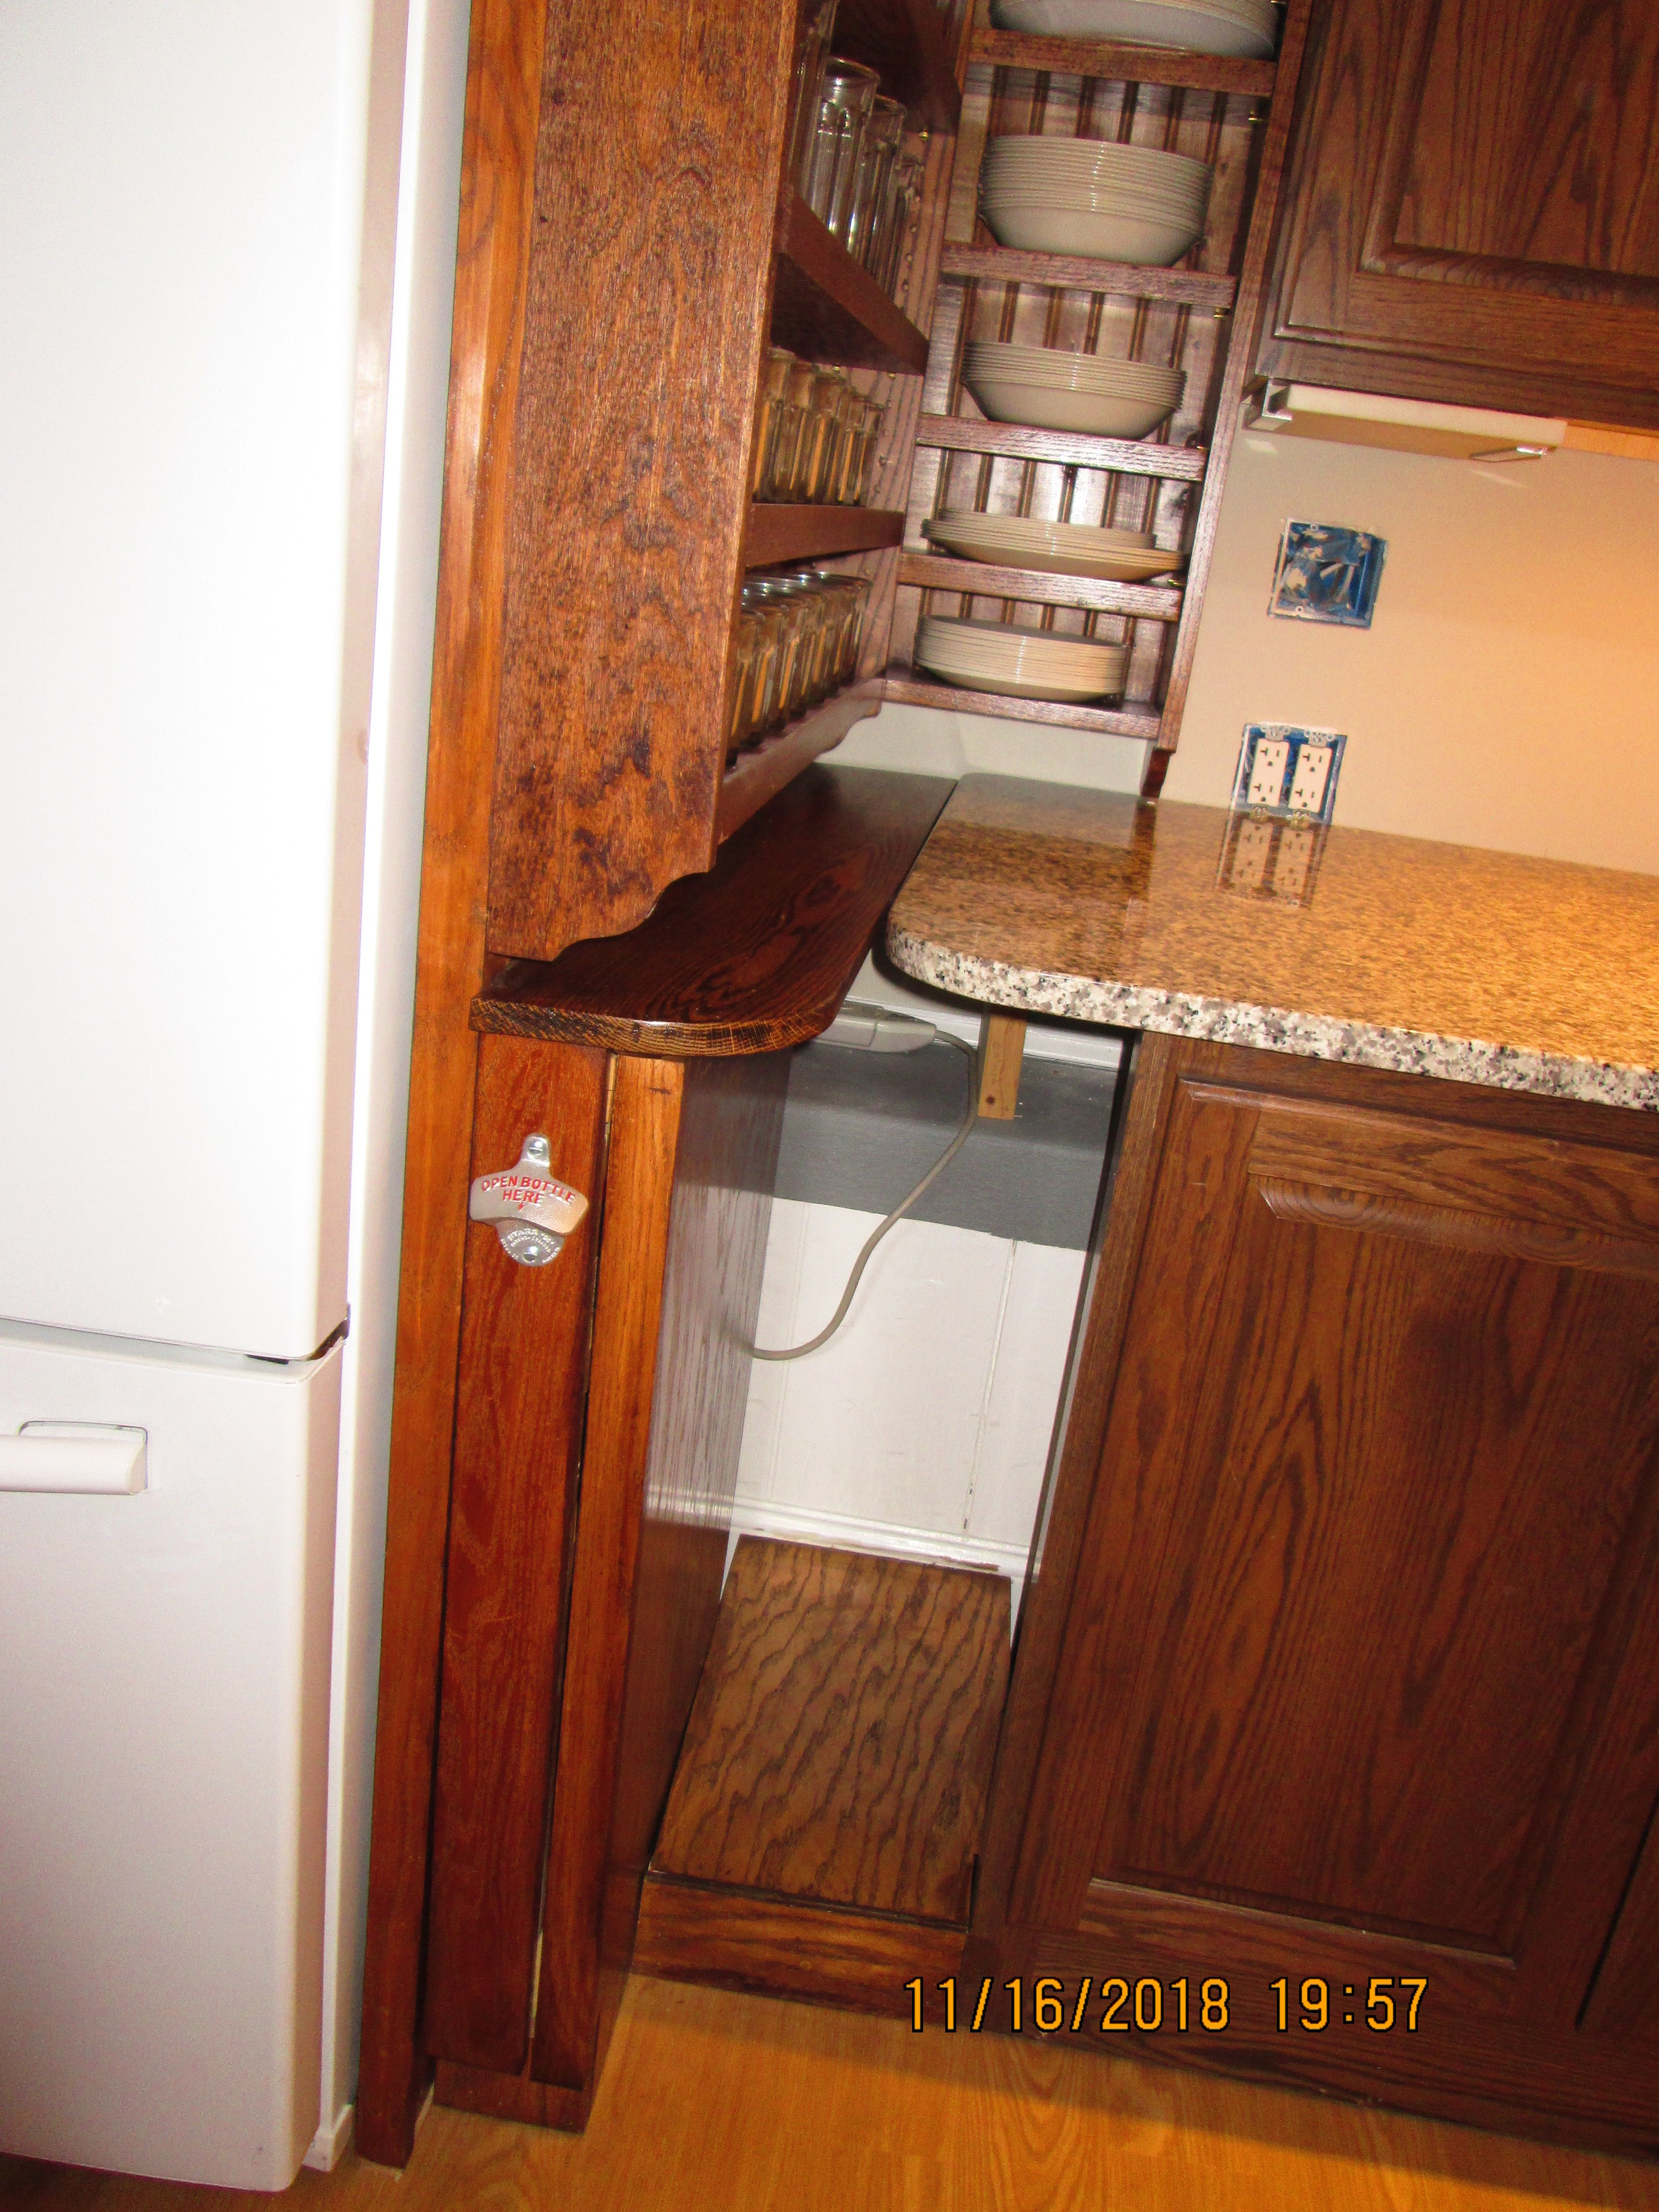 Pin On My Own Kitchenette Construction Progress Pictures